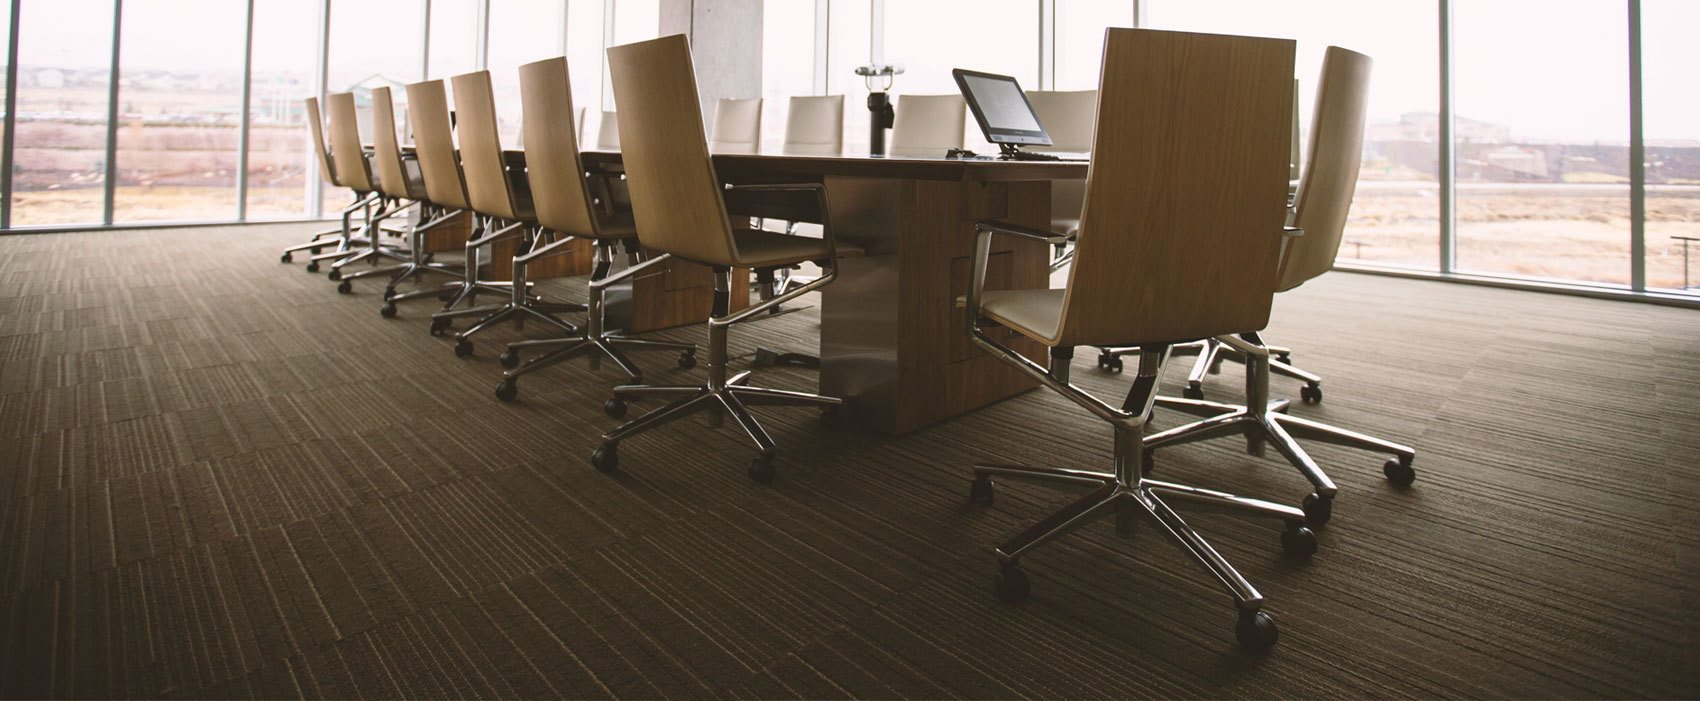 How to Clean Common Office Carpet Stains